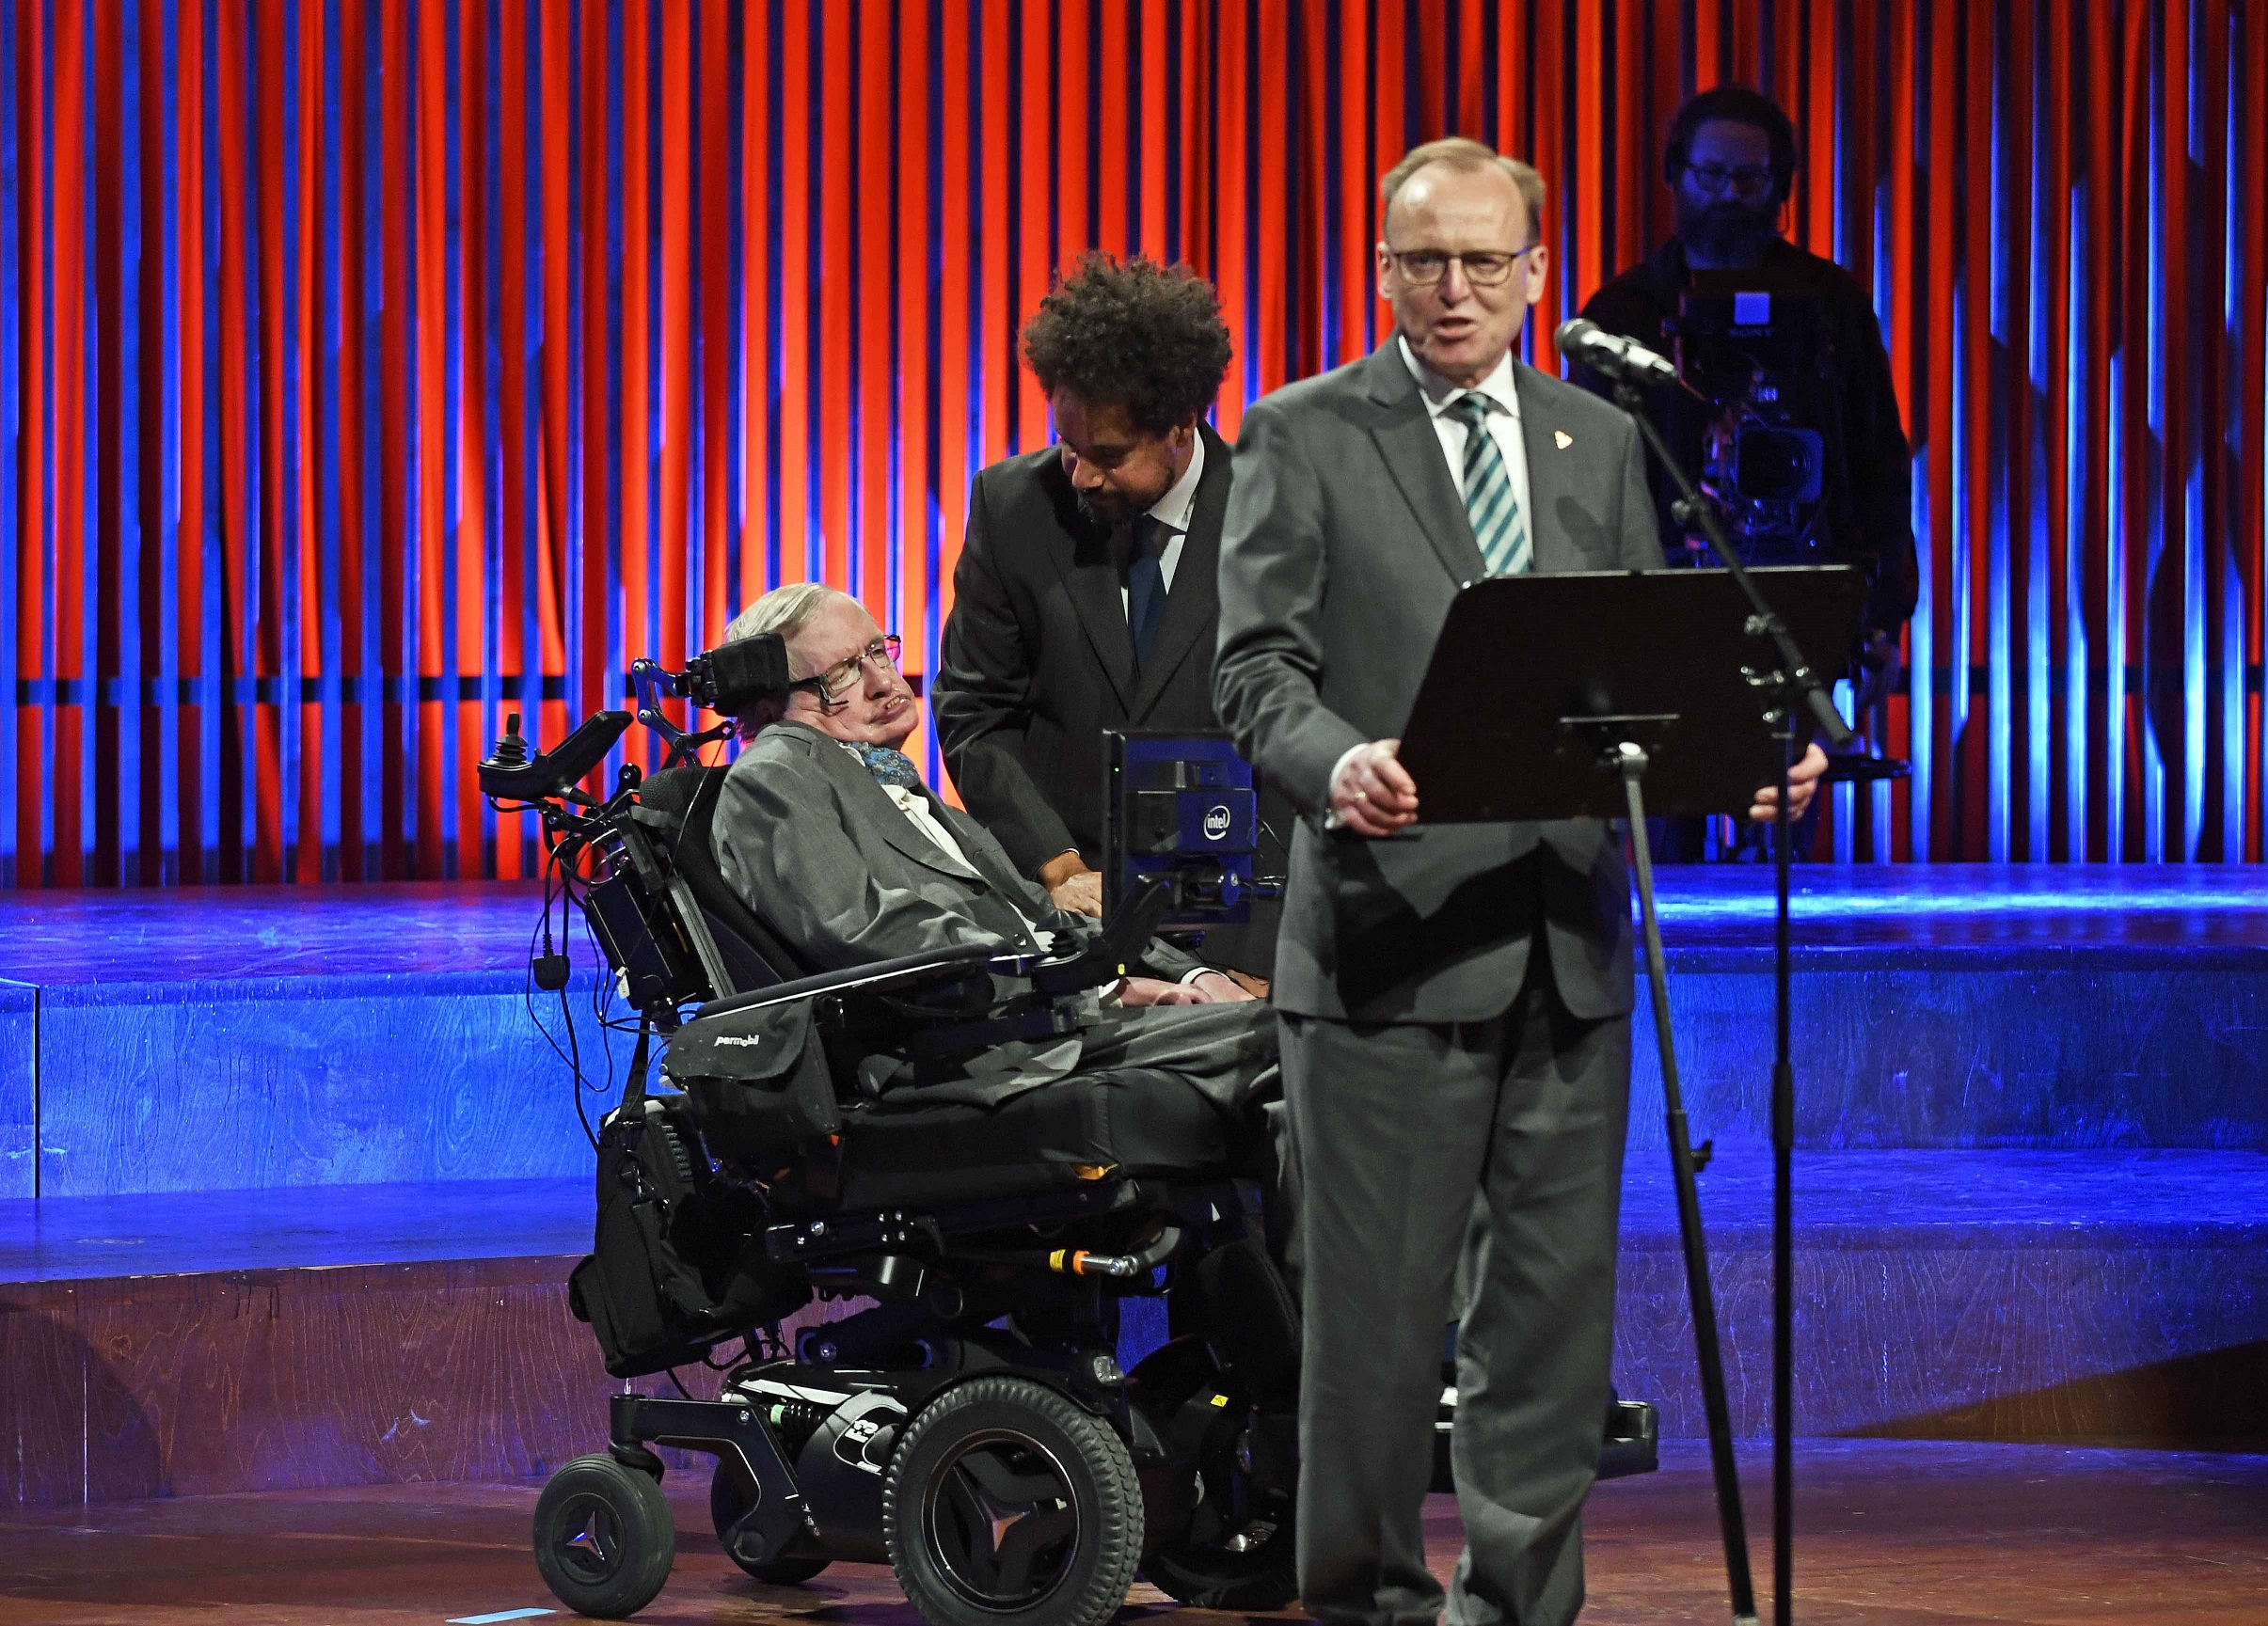 Hawking got a warm welcome from the Copenhagen crowd (photo: Hasse Ferrold)